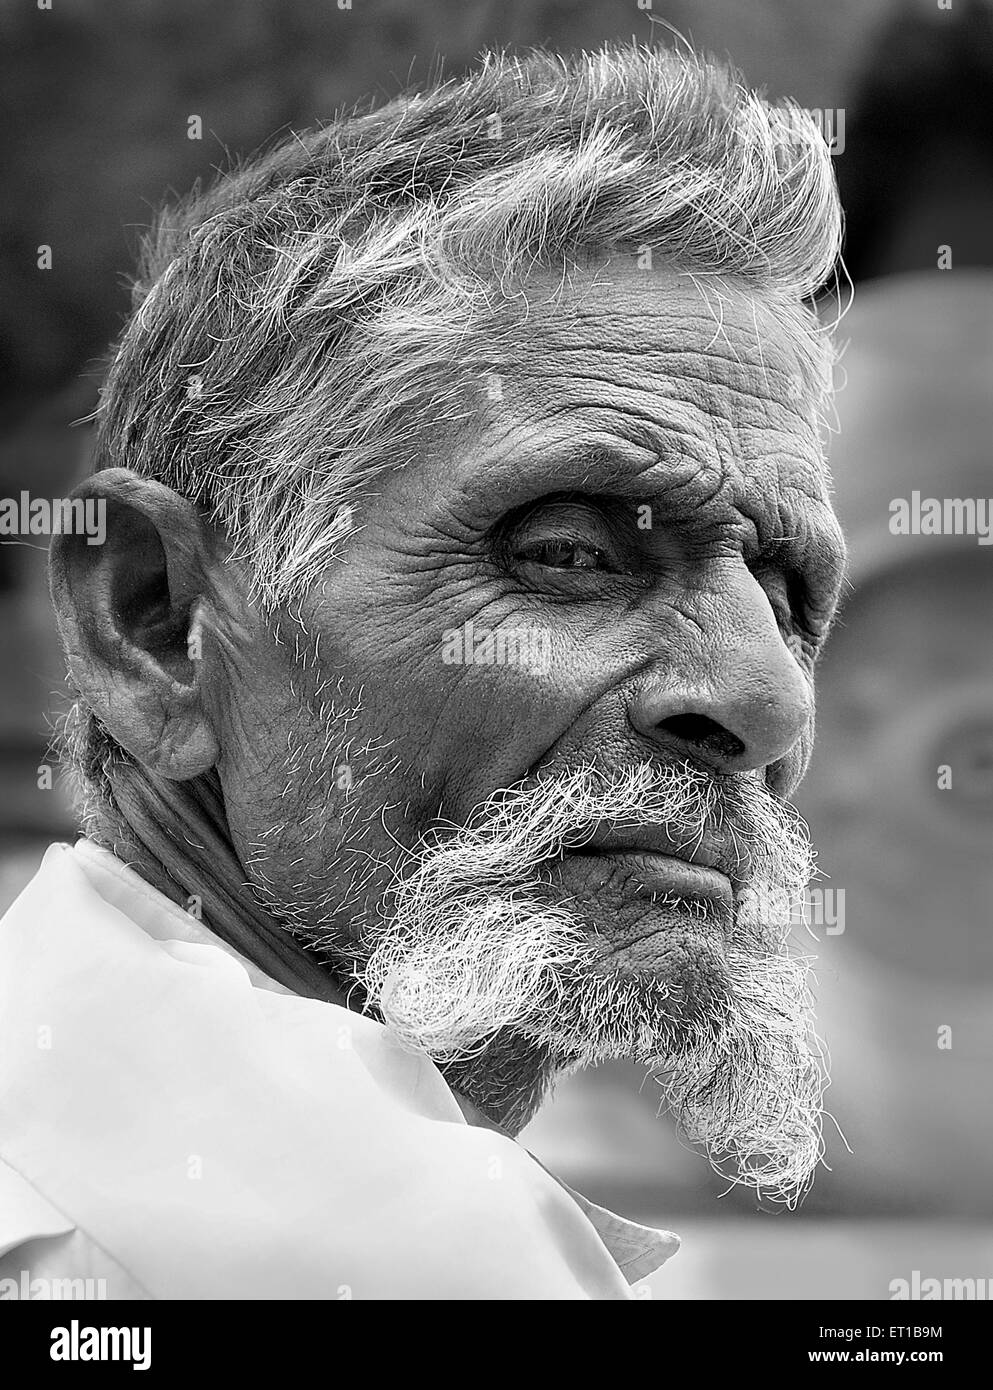 Long moustache of old man in serious mood ; Jodhpur ; Rajasthan ; India MR#746B - Stock Image